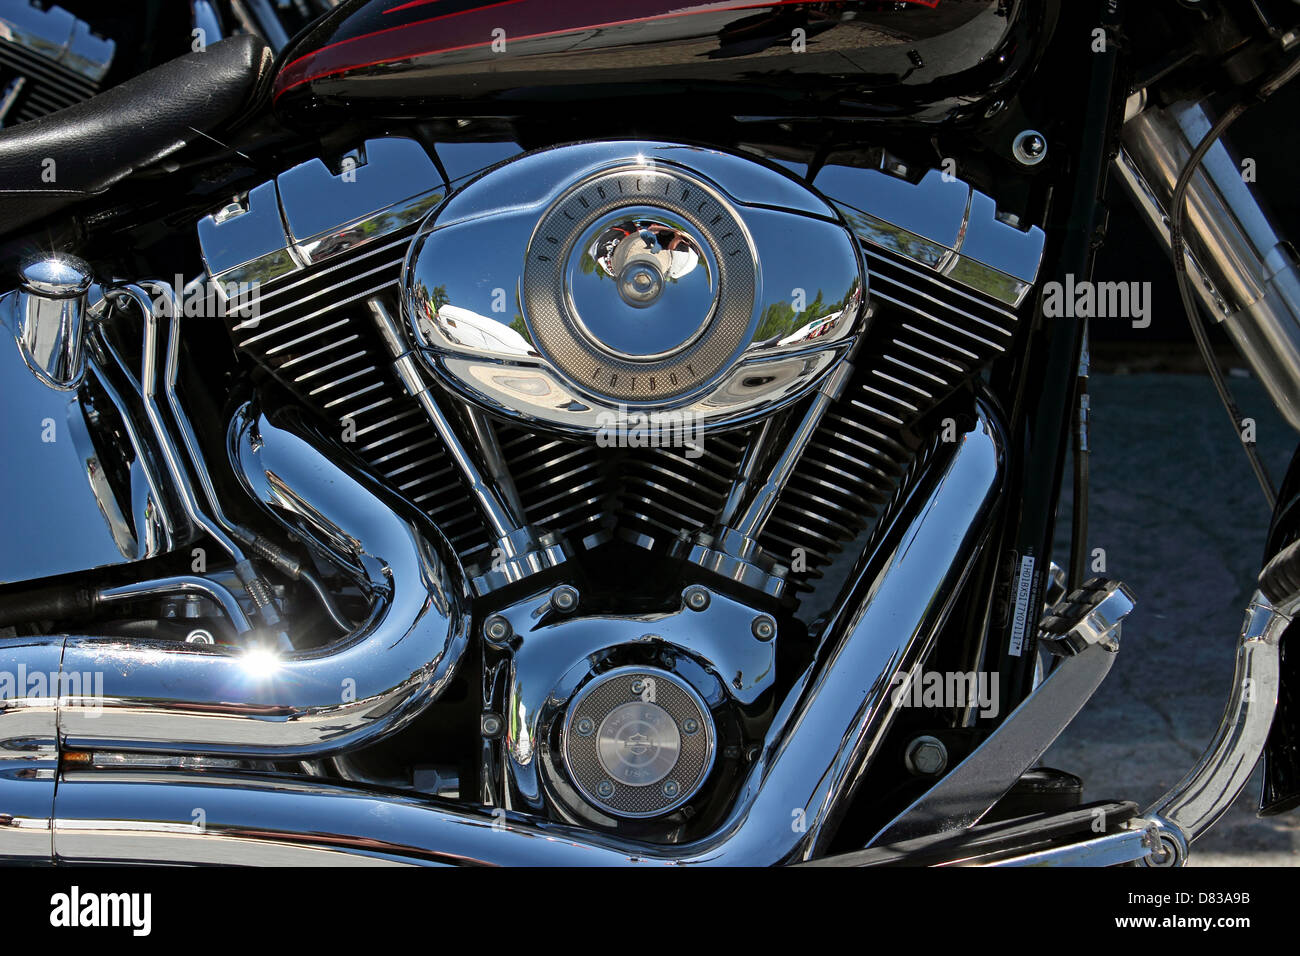 Harley Davidson Stock: A Harley Davidson Fatboy Chrome Motor Stock Photo